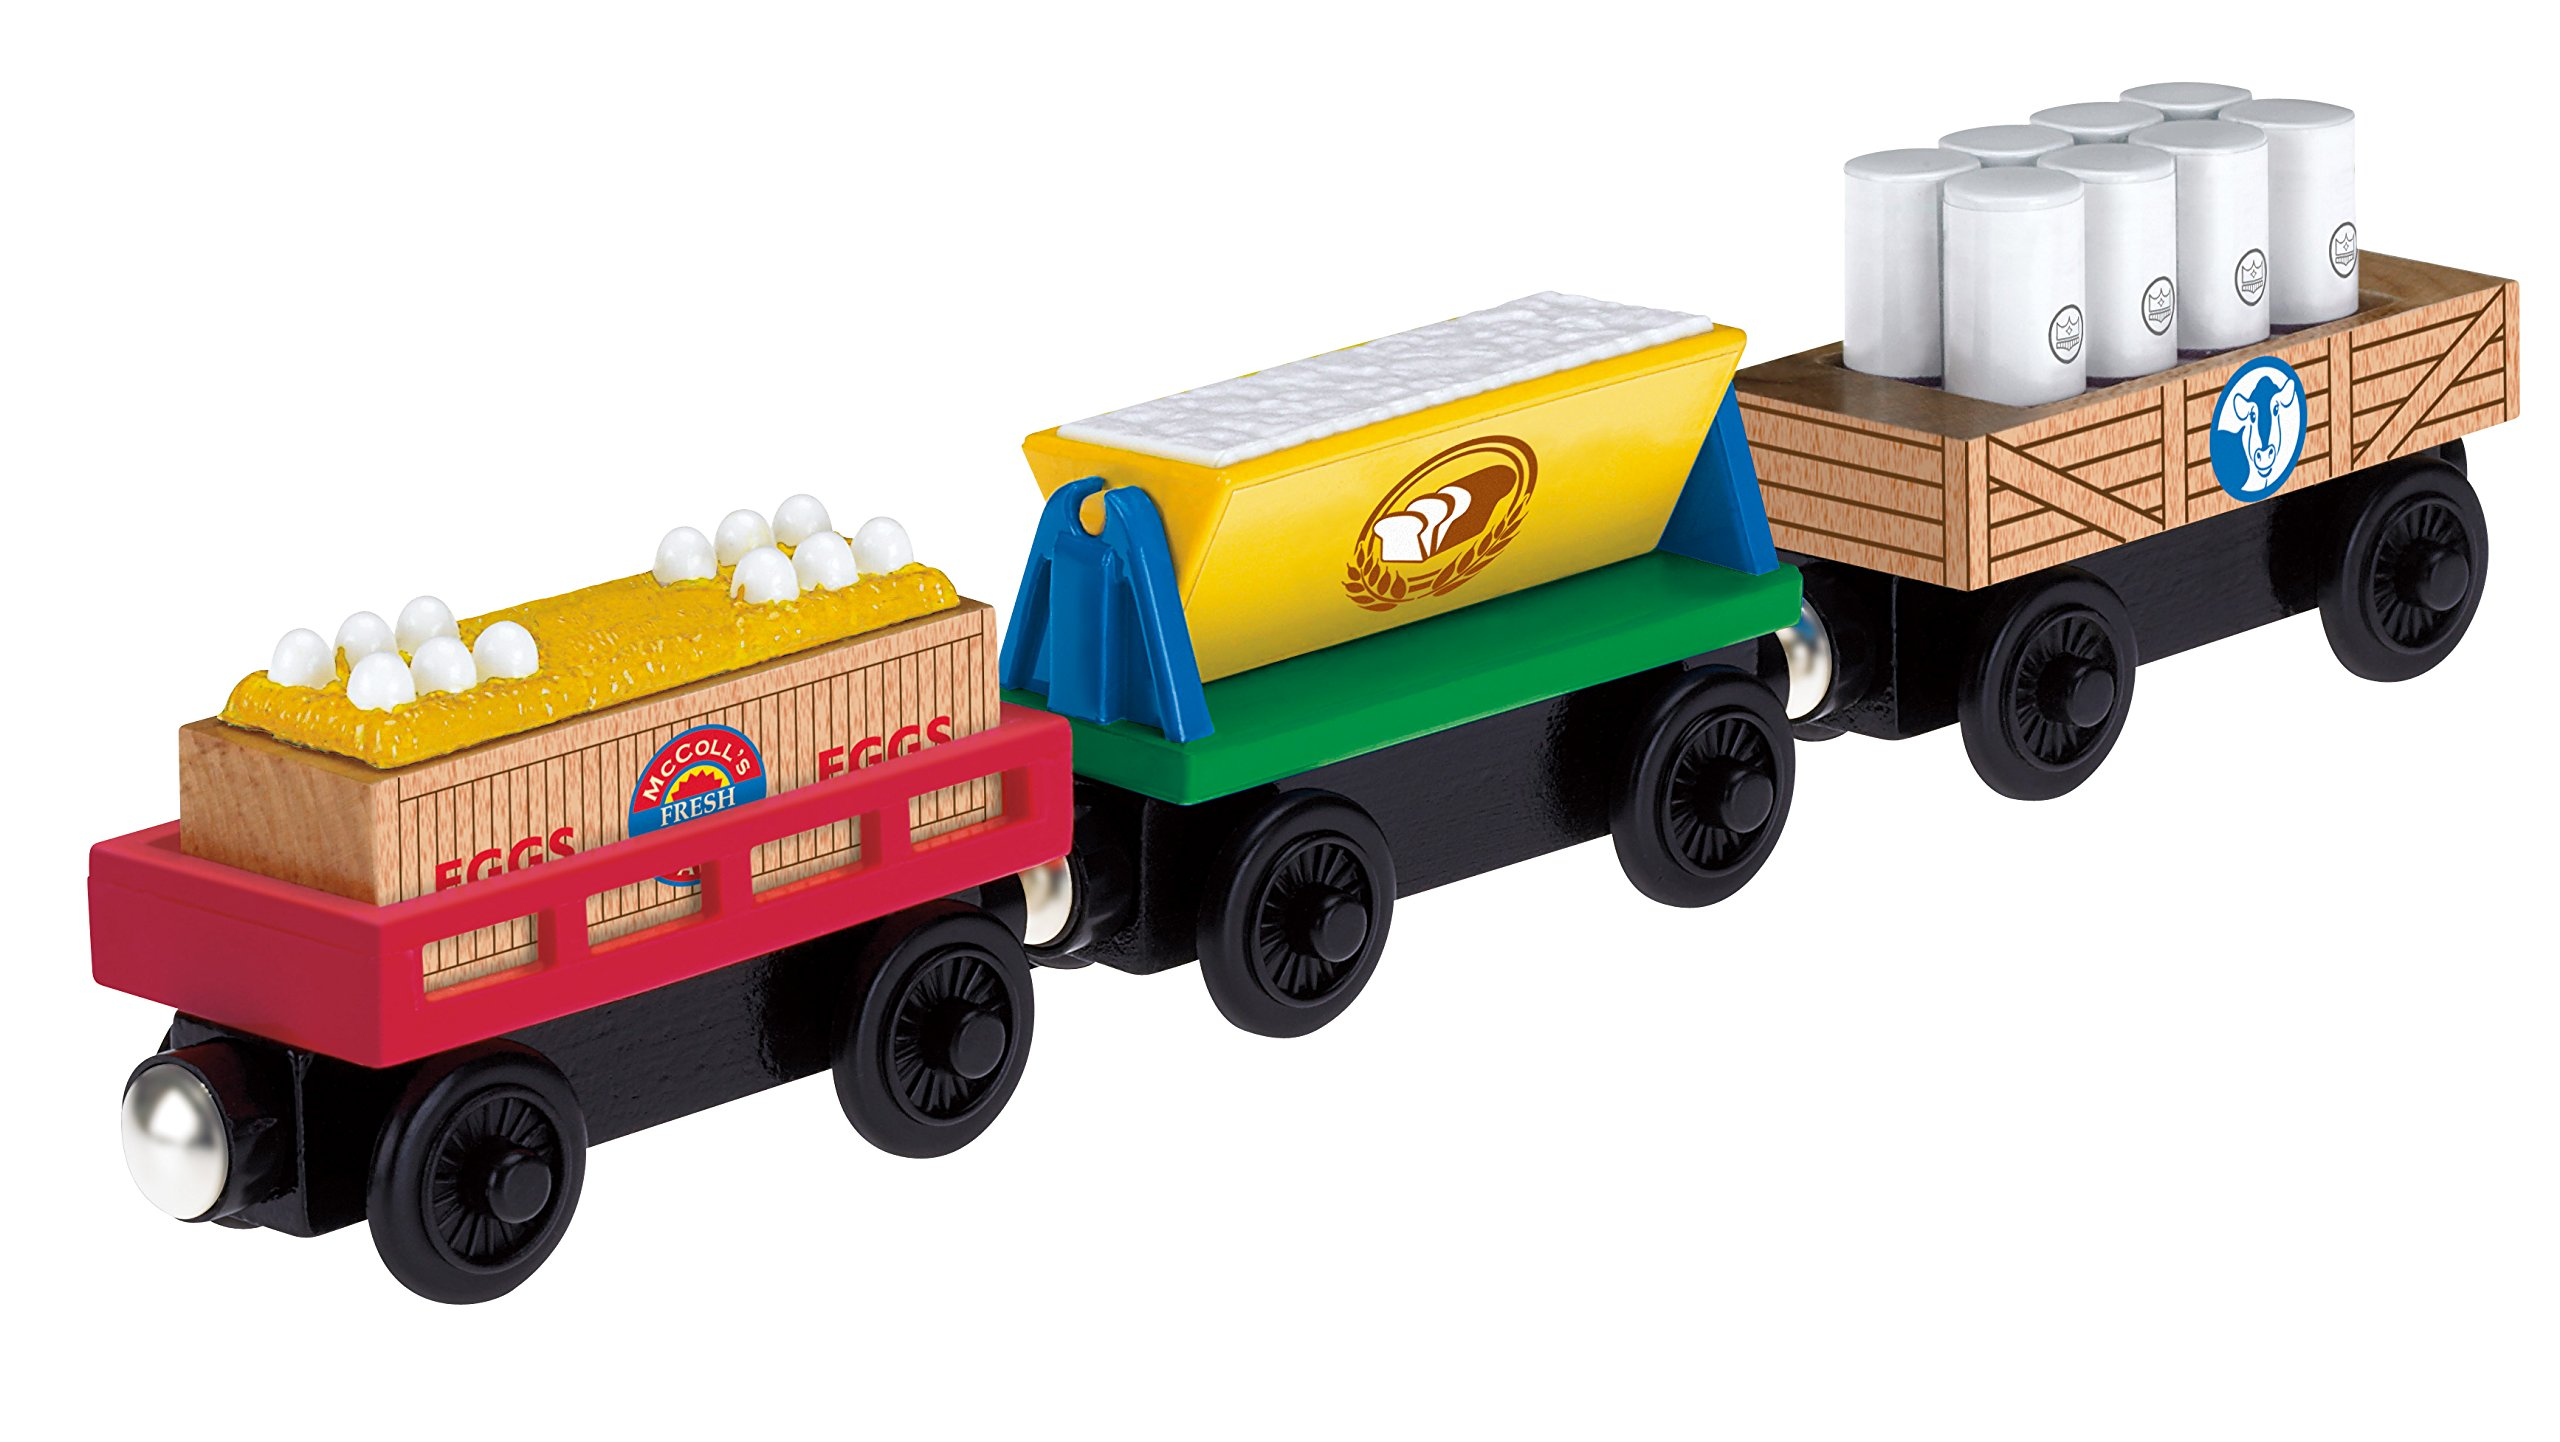 Fisher-Price Thomas & Friends Wooden Railway, Sodor Bakery Delivery